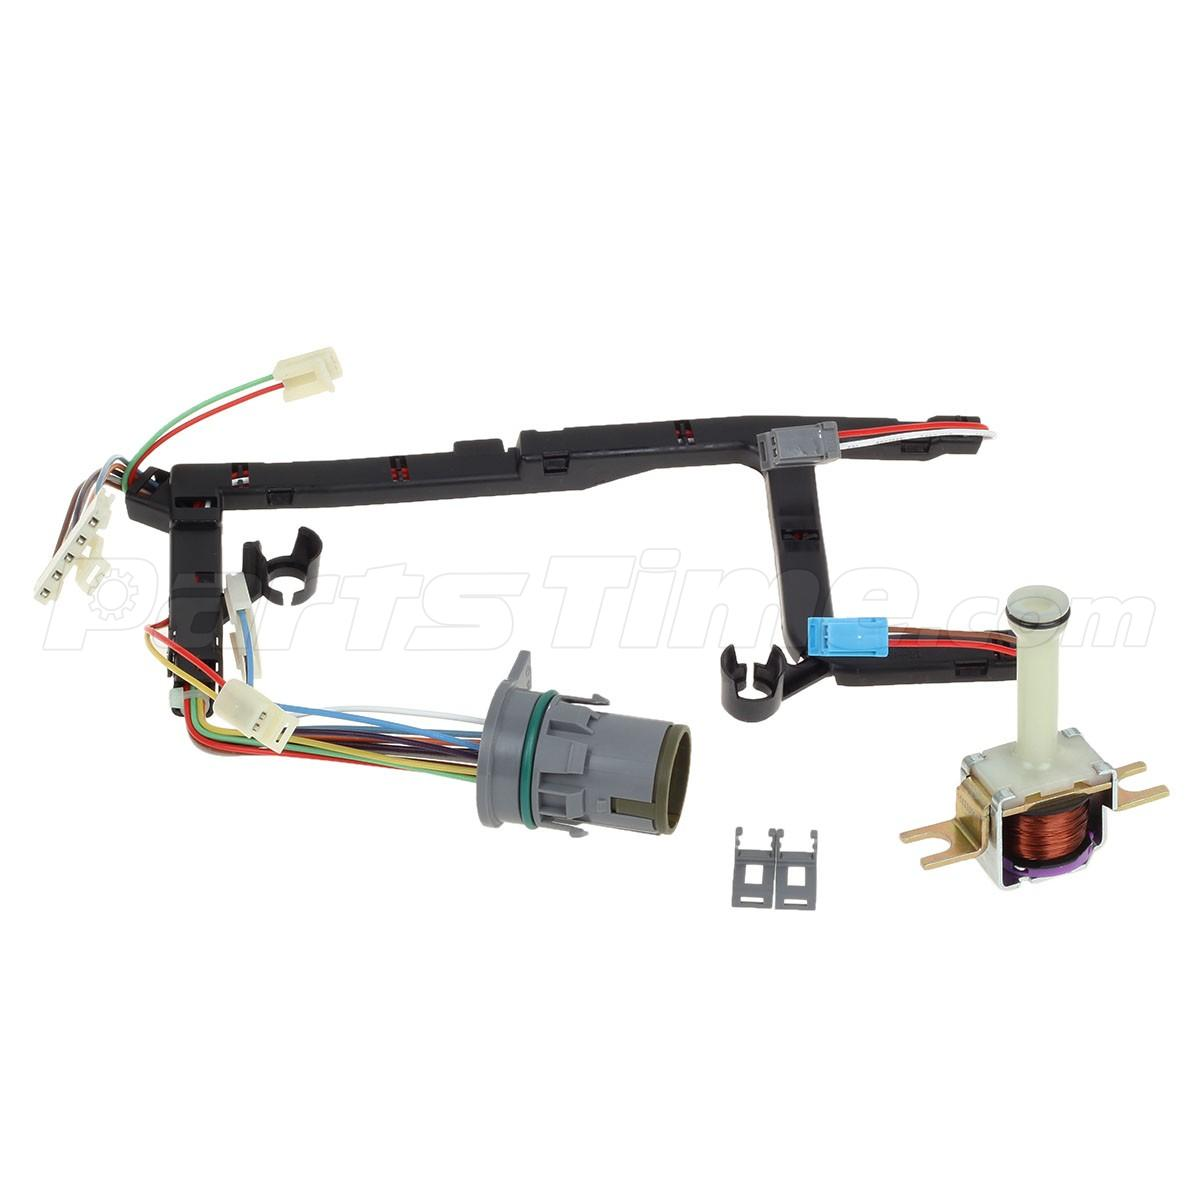 142072 8?p=ZGVhbGNsaWNr&s=t&rn=9208694 transmission 4l60e tcc look up solenoid with internal wire harness 4l60e internal wiring harness at couponss.co